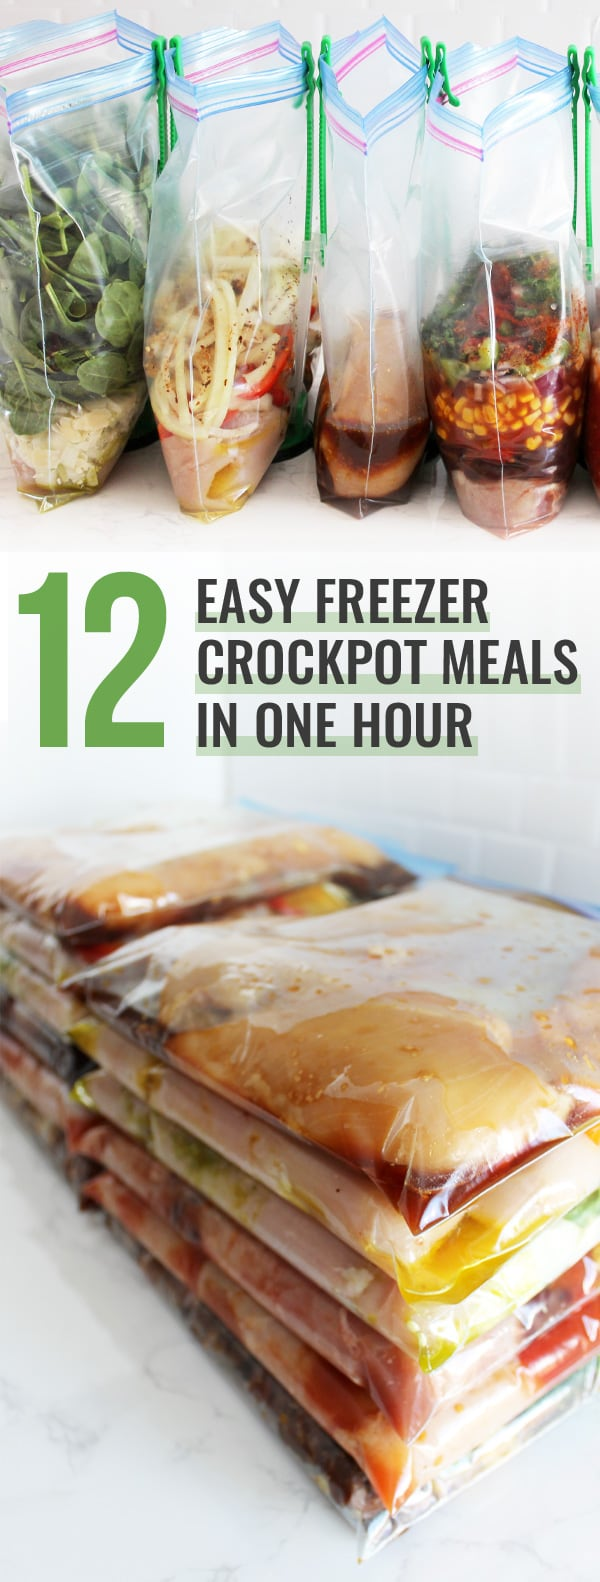 12 Easy Freezer Crockpot Meals in One Hour | The Family Freezer